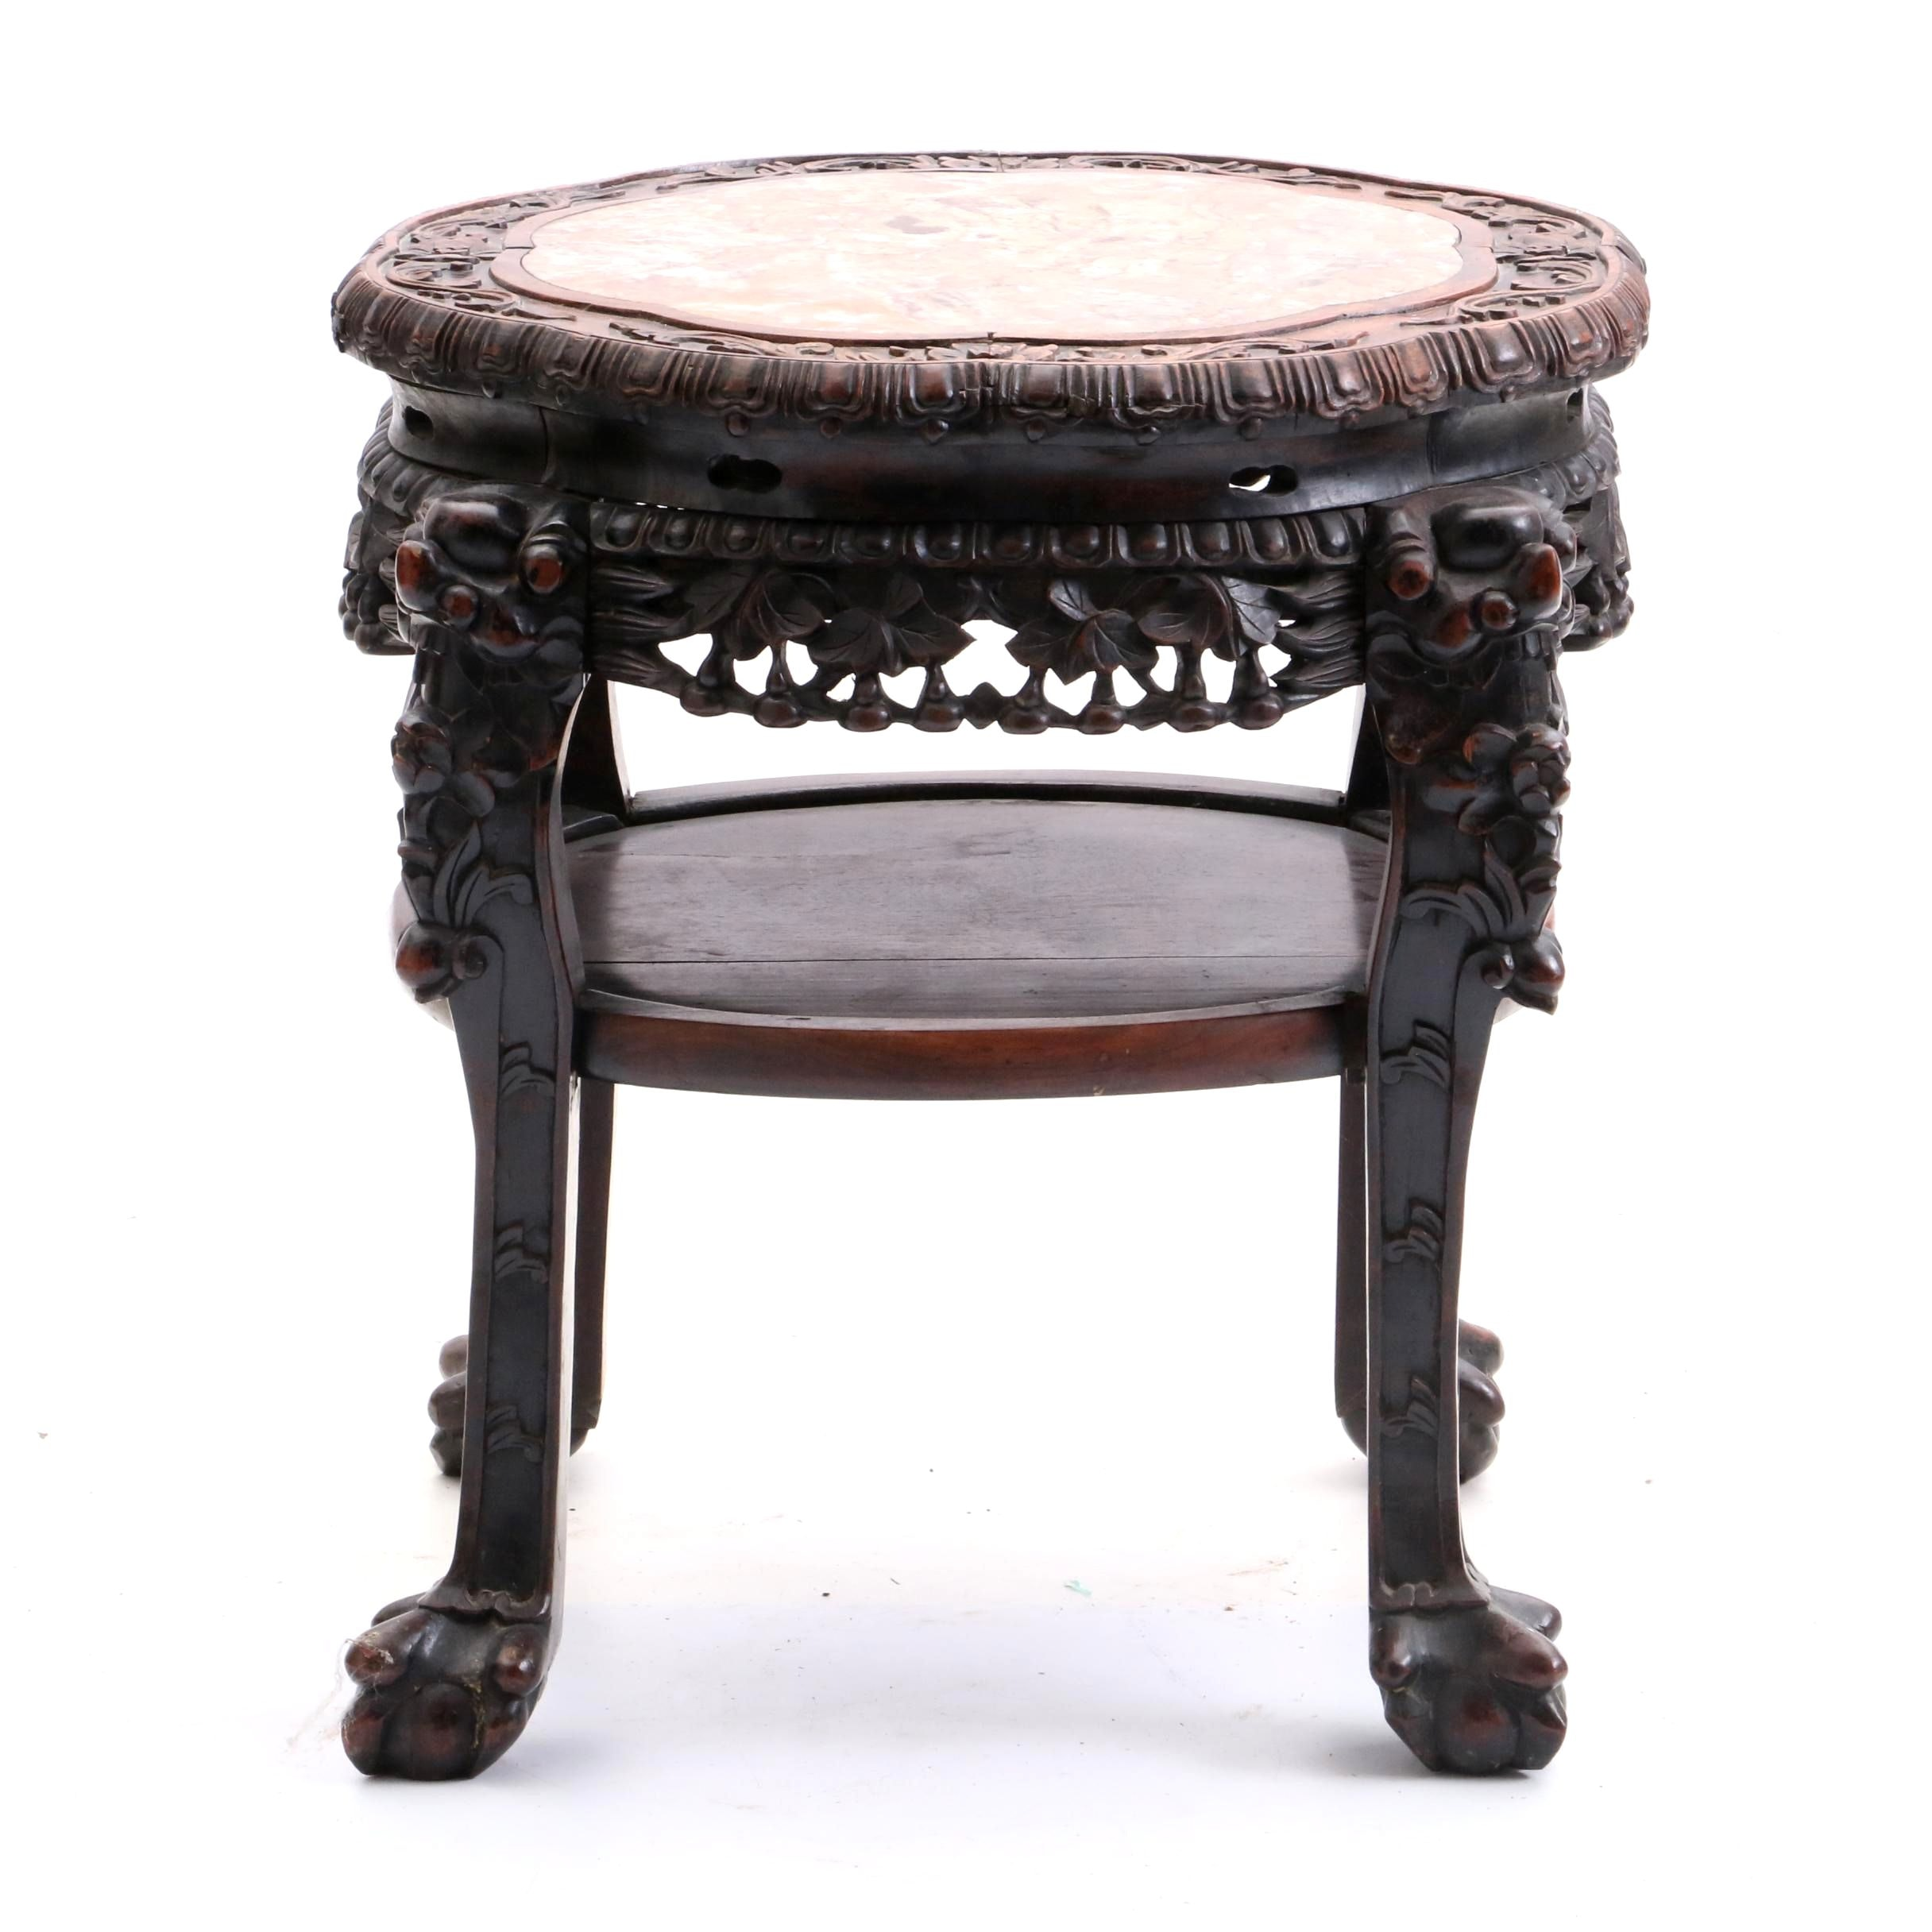 Chinese Carved Rosewood and Marble Top Accent Table, Early/Mid 20th Century